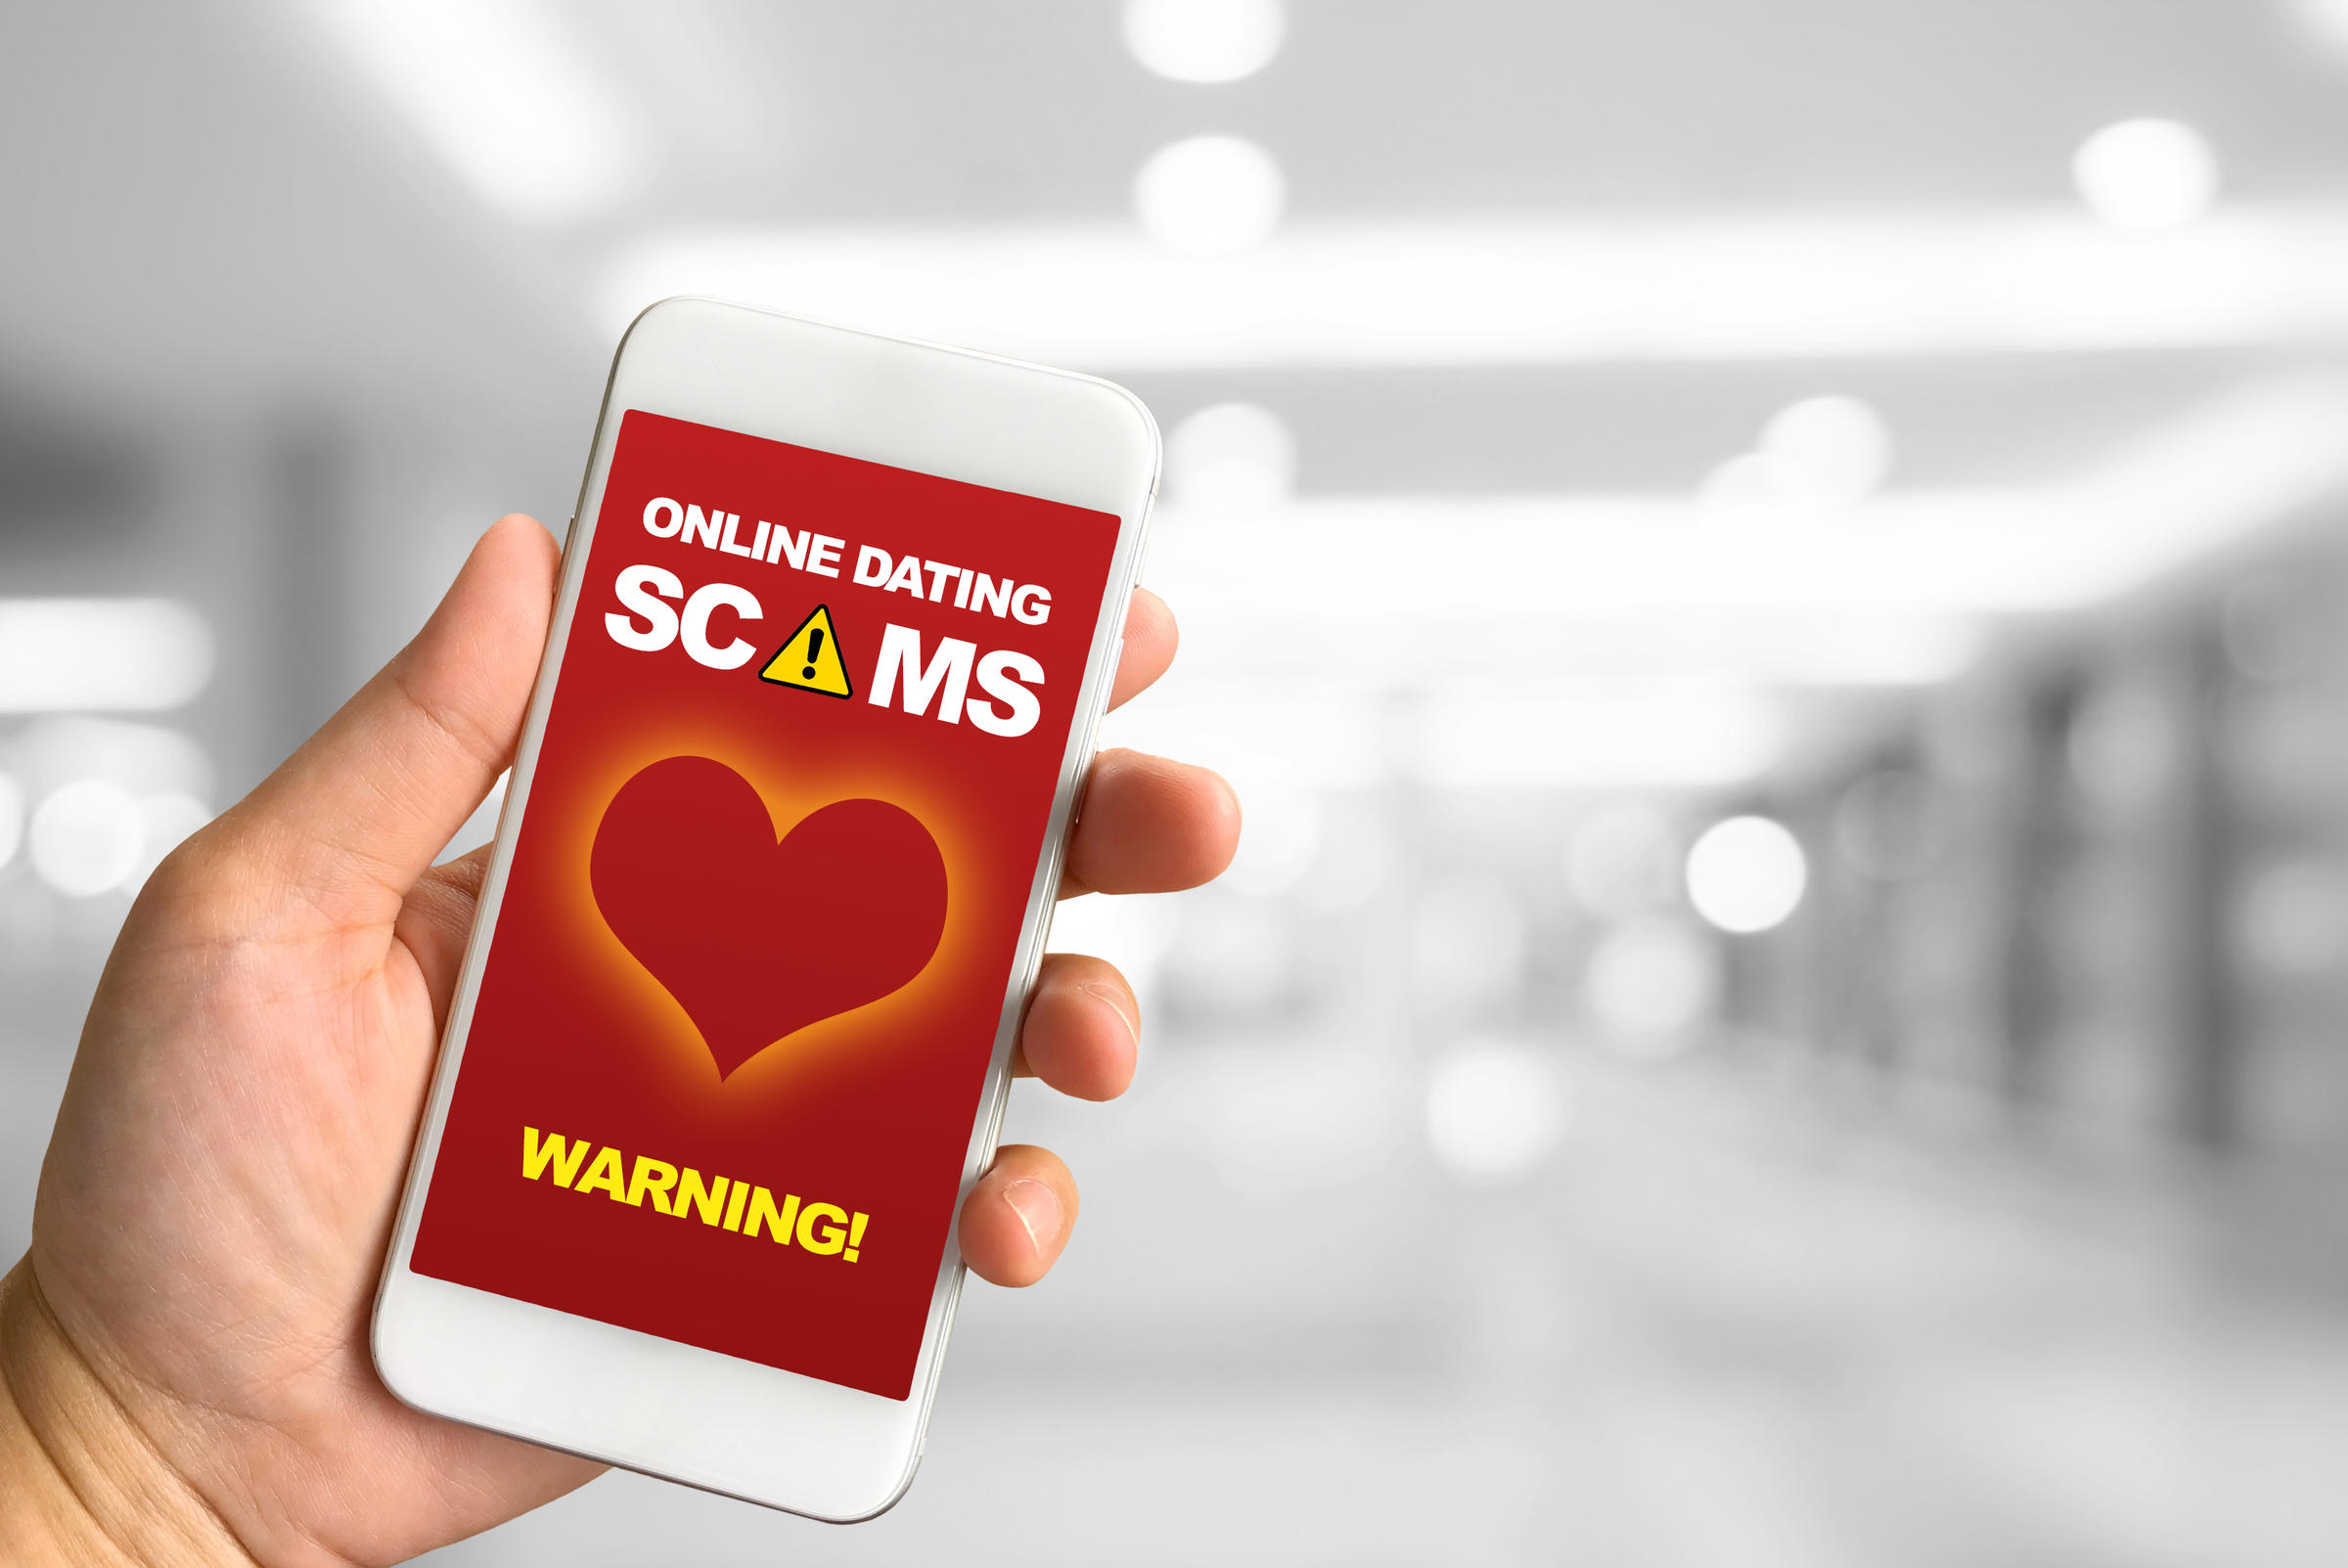 Scam alert: £50 million lost to romance and online dating